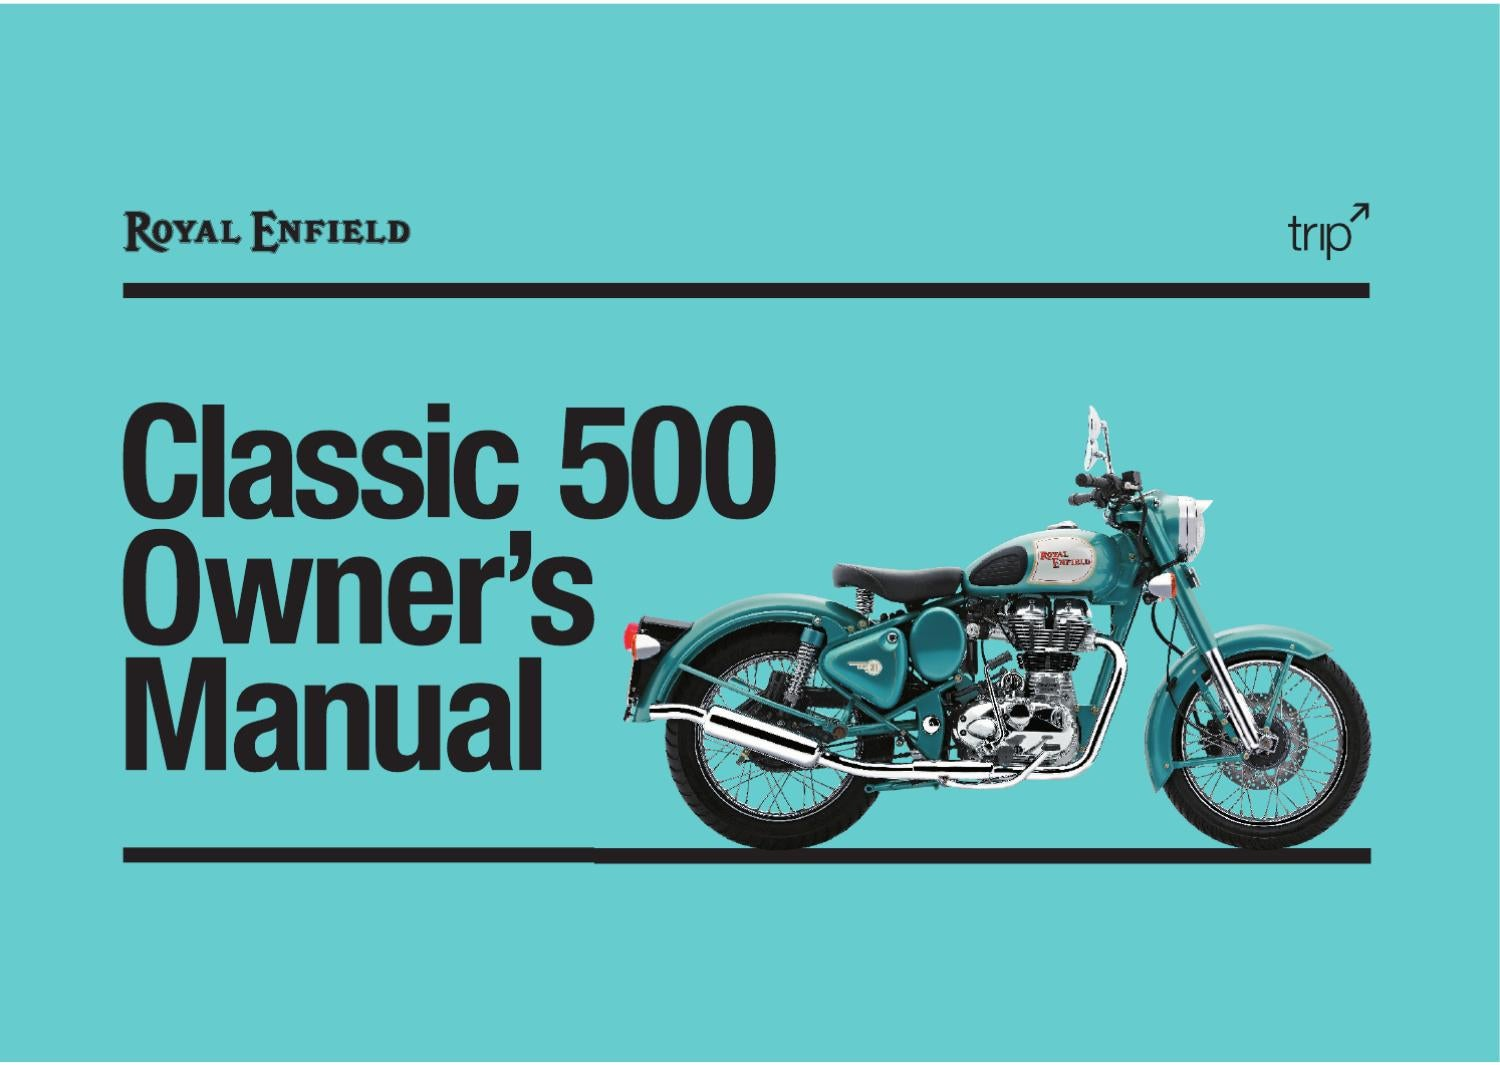 Royal Enfield Classic 500 Owners Manual By Rakesh Kumar Issuu